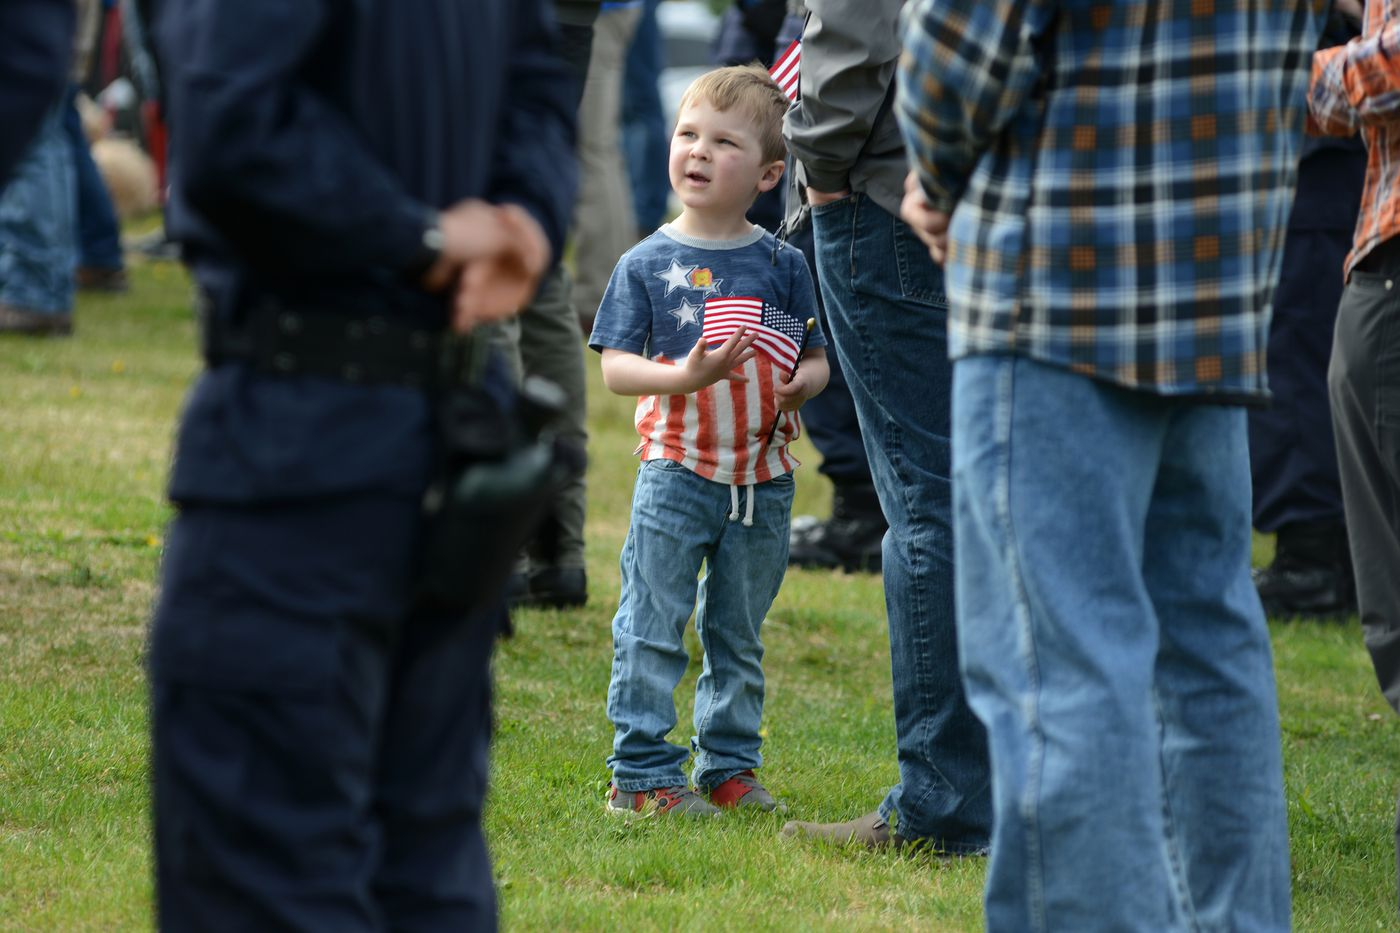 Elijah Oudin, 5, looks around the crowd during the Memorial Day ceremony. (Anne Raup / ADN)